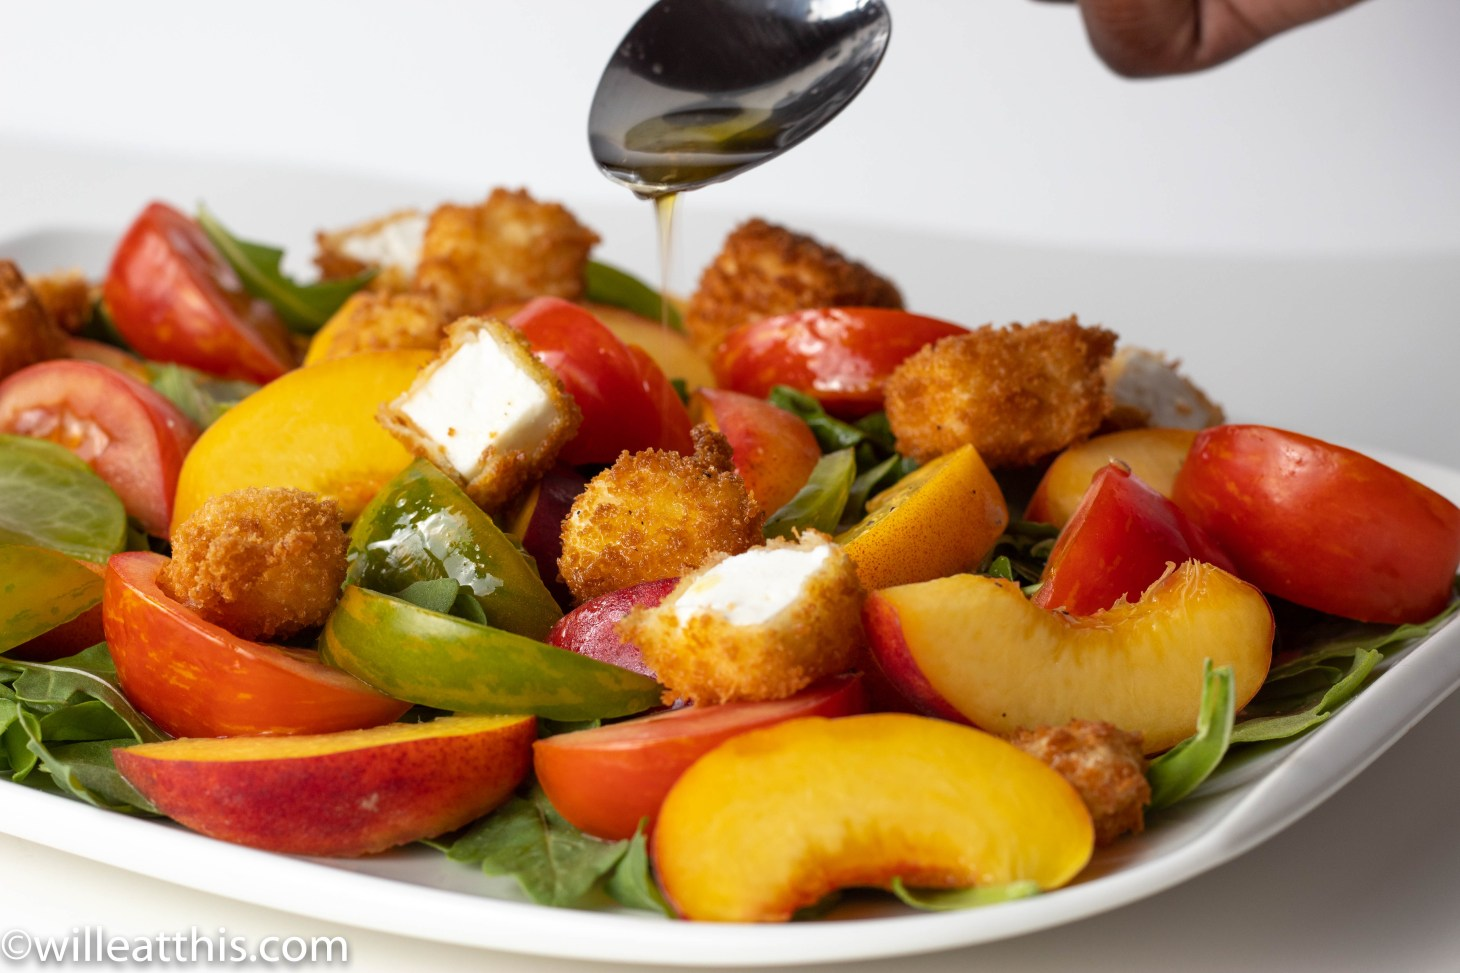 Drizzling oil on a platter of peach tomato salad with feta crouton